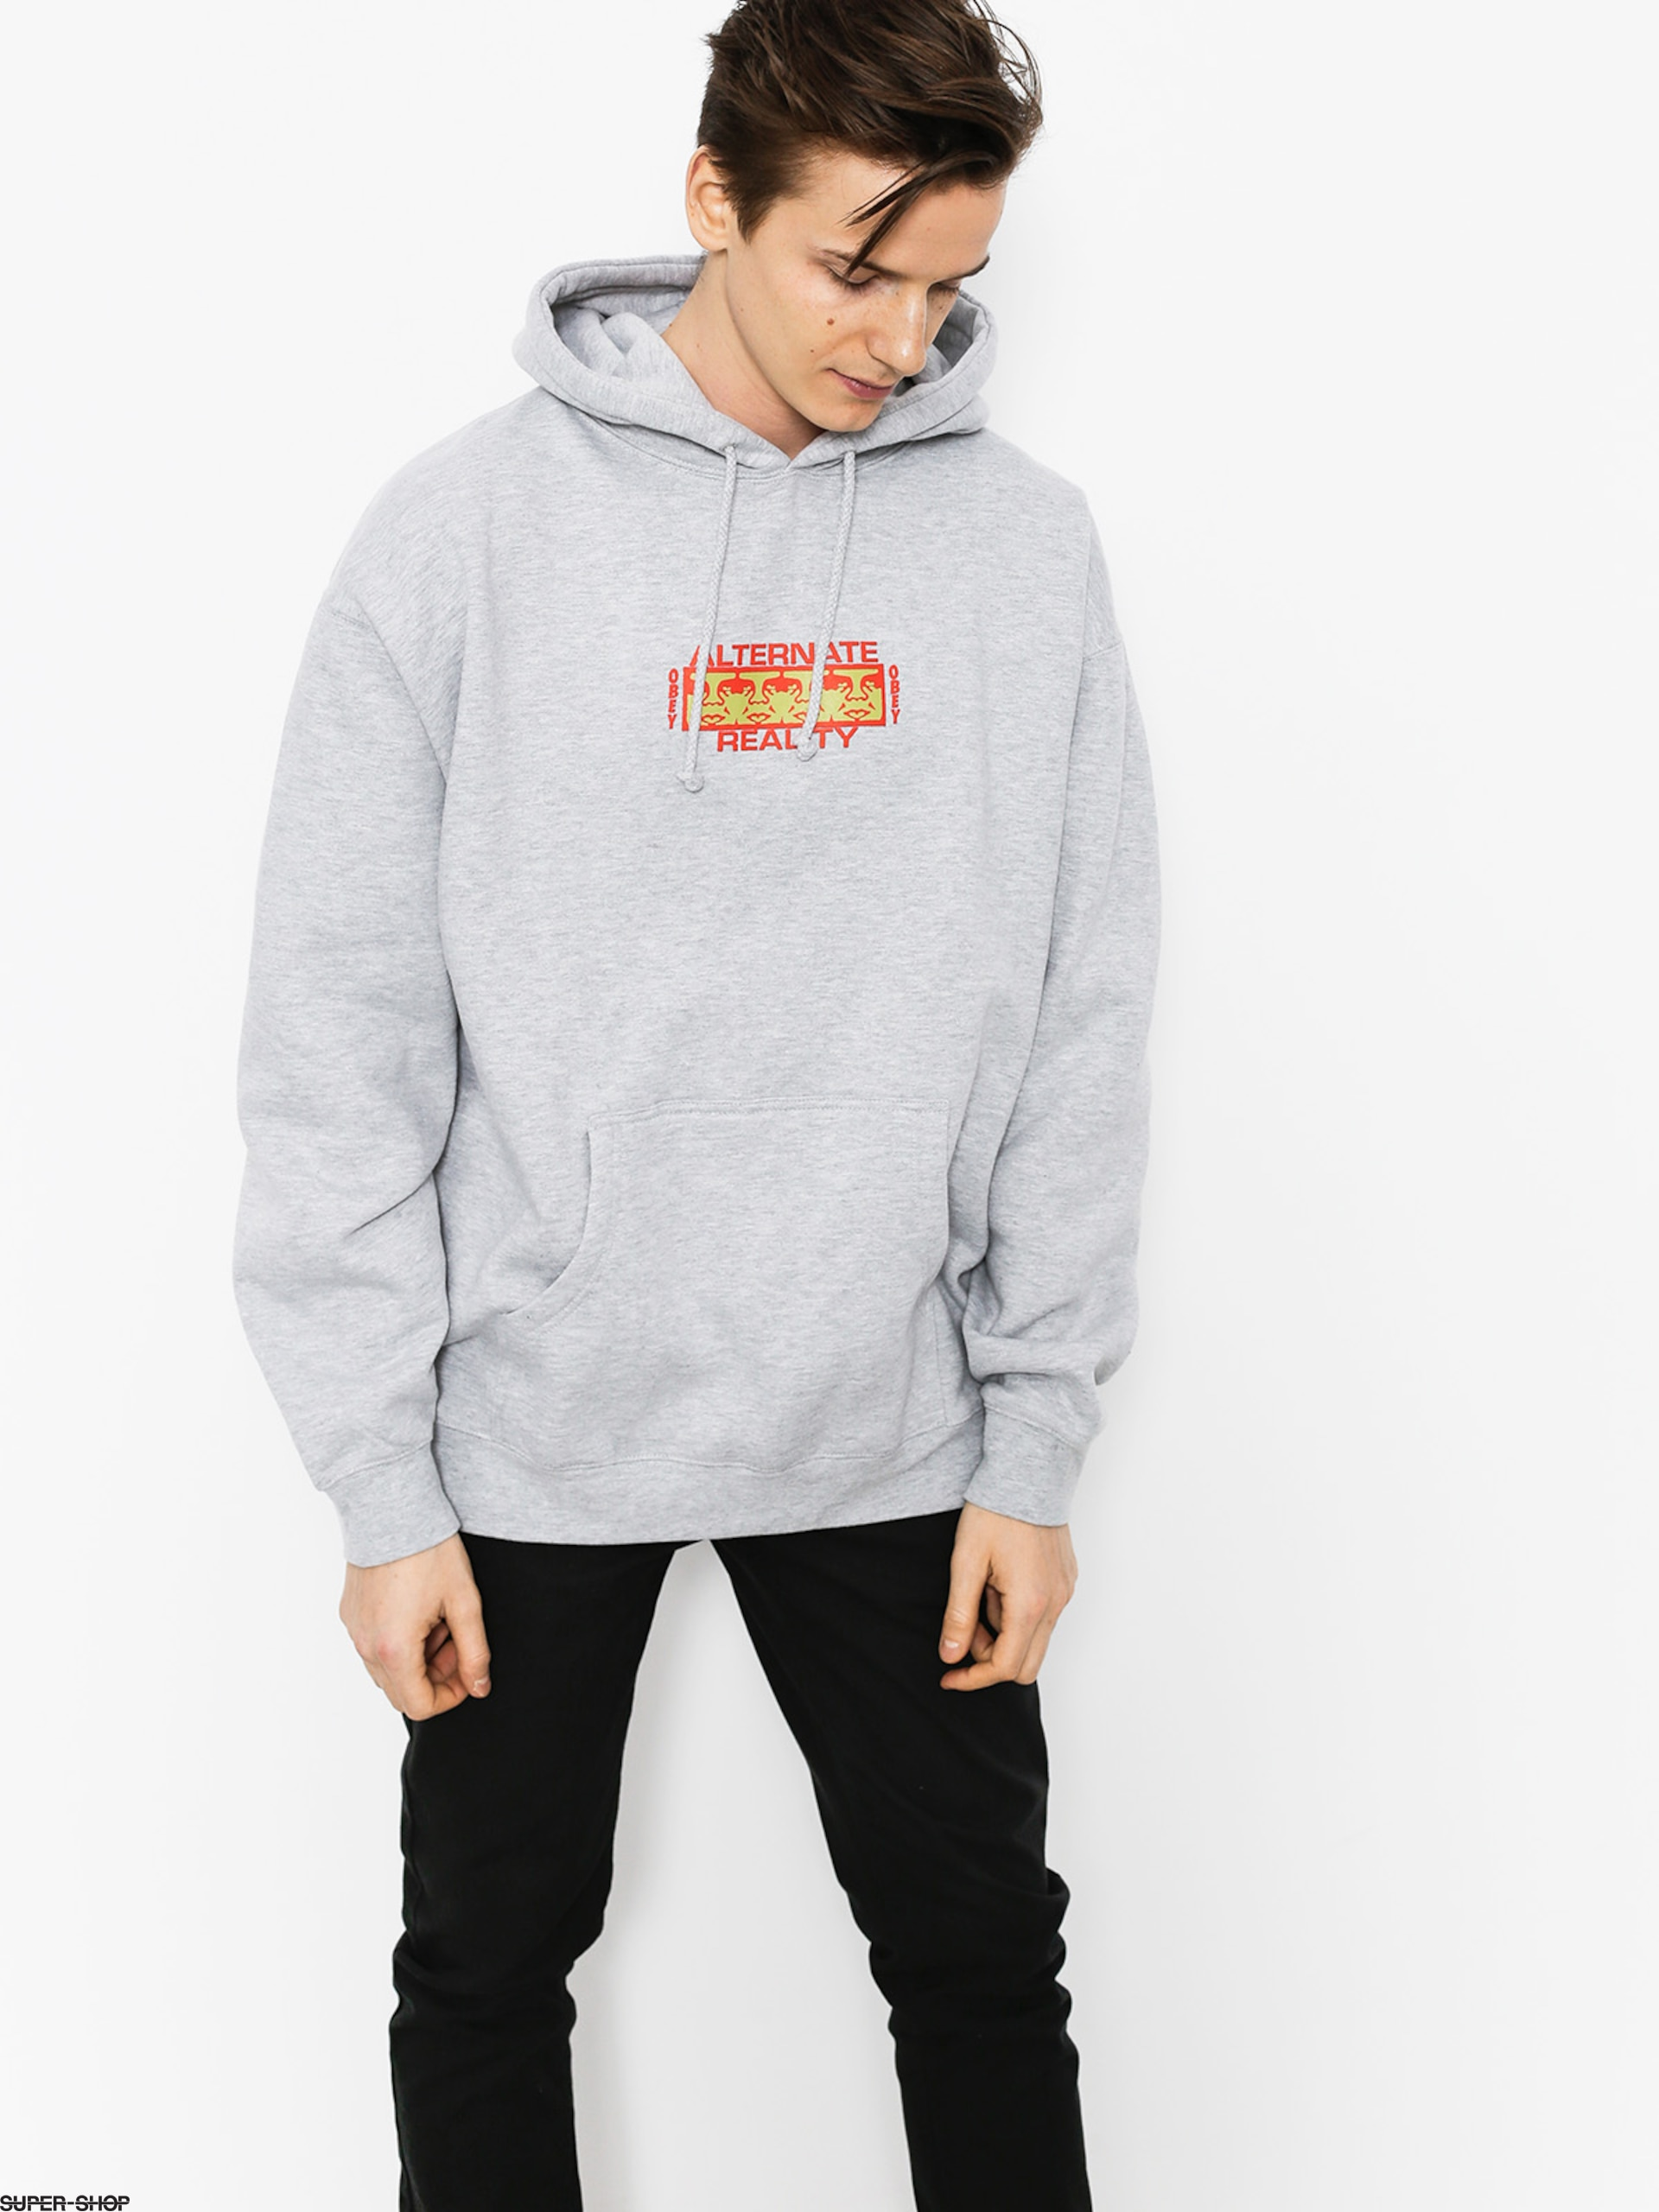 OBEY Sweatshirt Alternate Reality HD (hea)